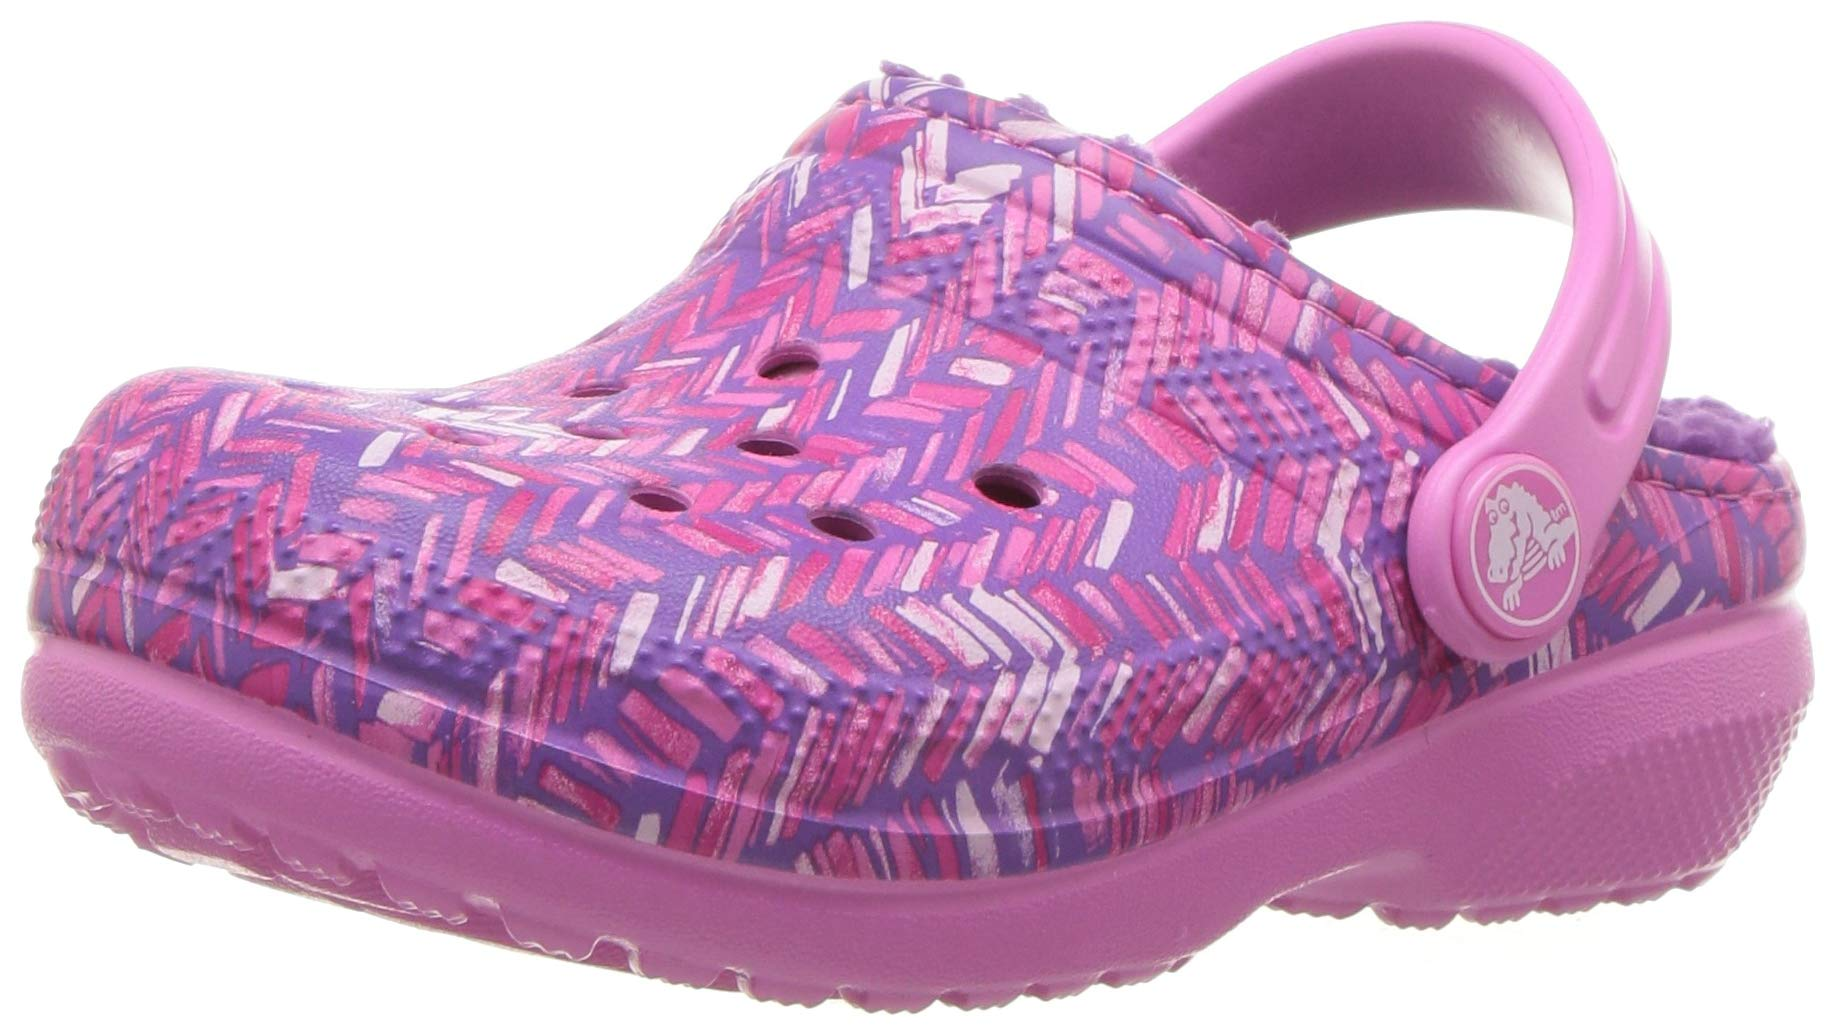 Crocs Classic Lined Graphic Clog - K, Party Pink/Amethyst, 12 M US Little Kid